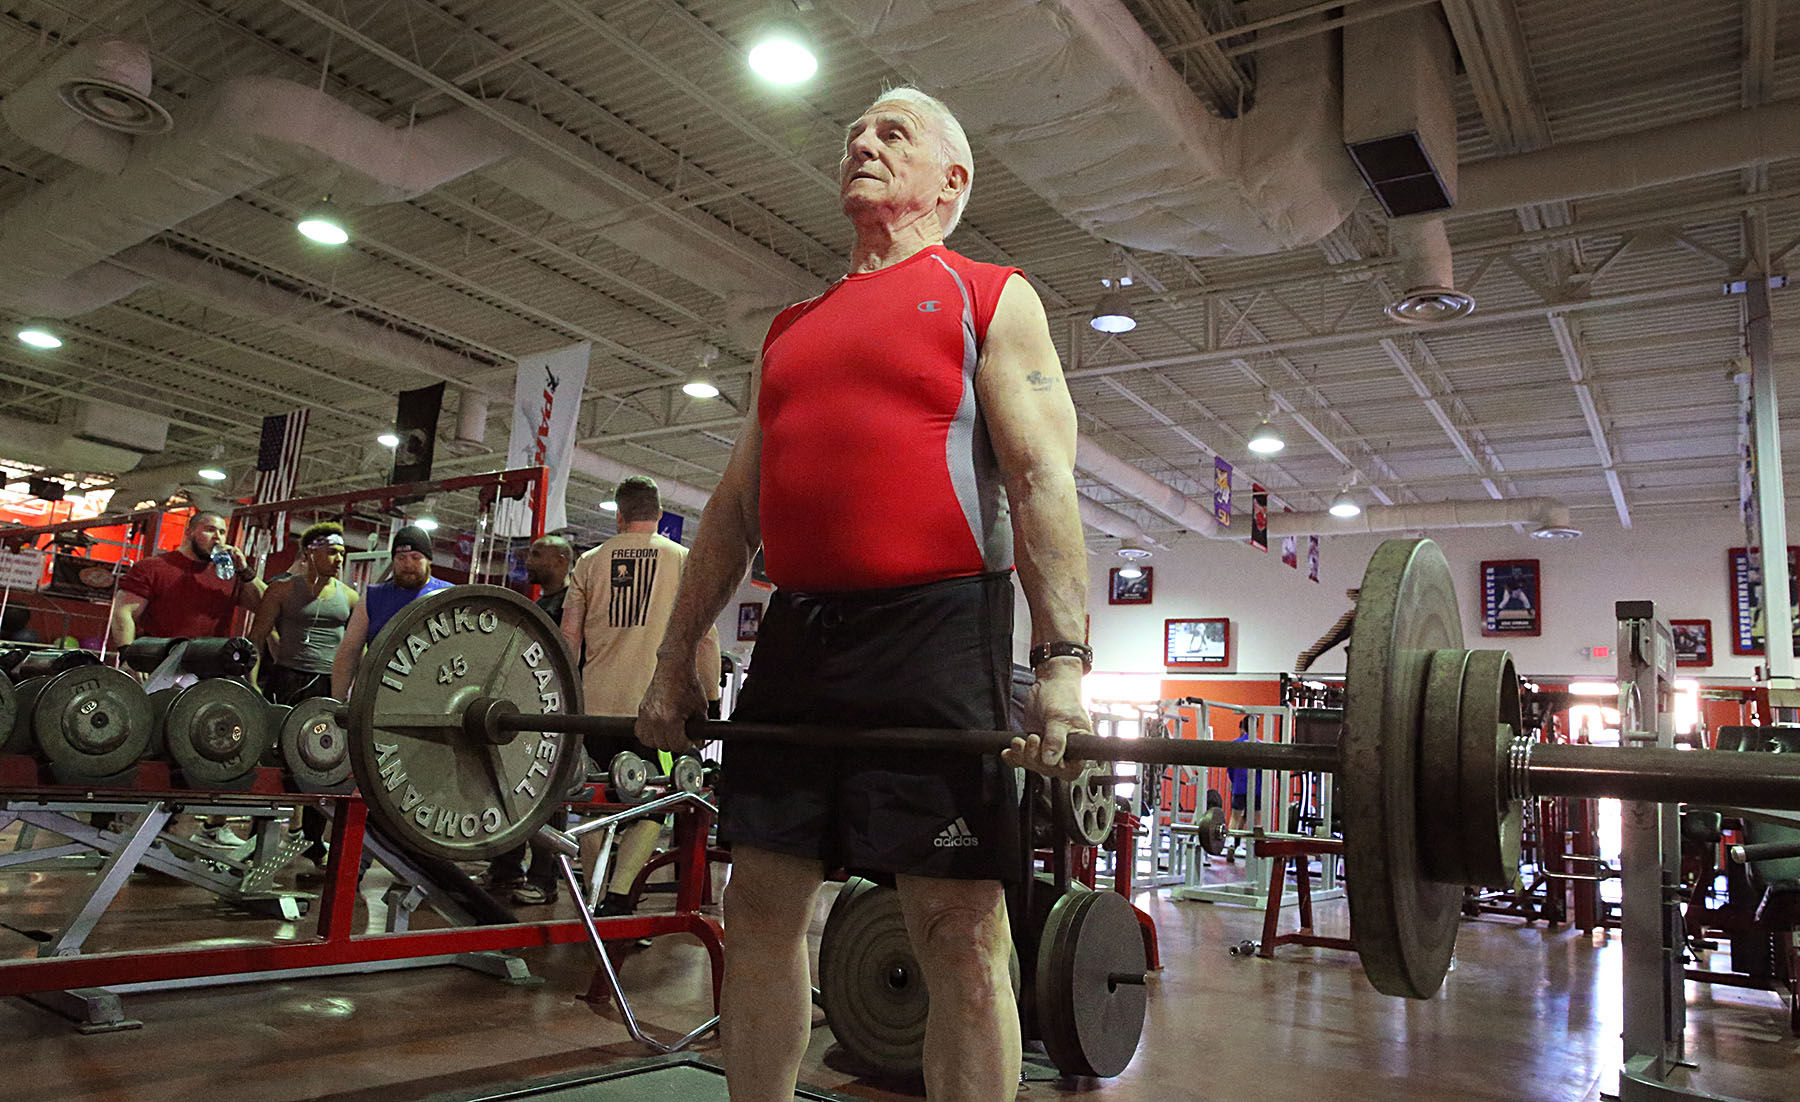 WATCH 80 year old Galloway powerlifter South Jersey